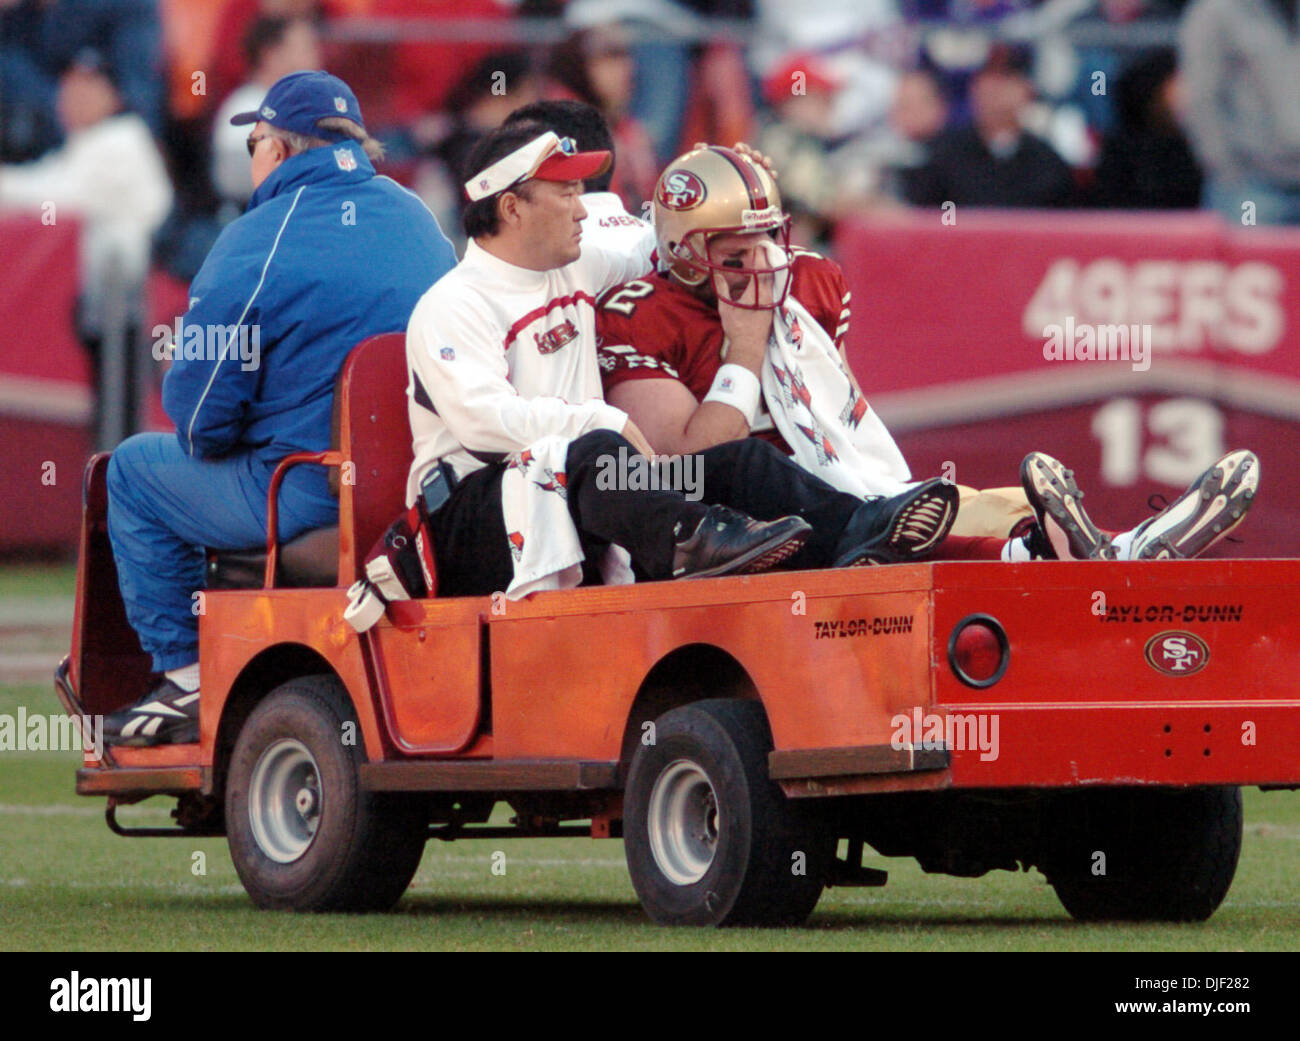 December 9th, 2007 - San Francisco, California, USA - 49er QB Trent Dilfer is driven off the field with a possible concussion at half-time during their game Sunday Dec. 9, 2007, at Monster Park in San Francisco, Calif.   The Vikings won the game 27-7.  (Credit Image: © Bob Pepping/Contra Costa Times/ZUMA Press) - Stock Image